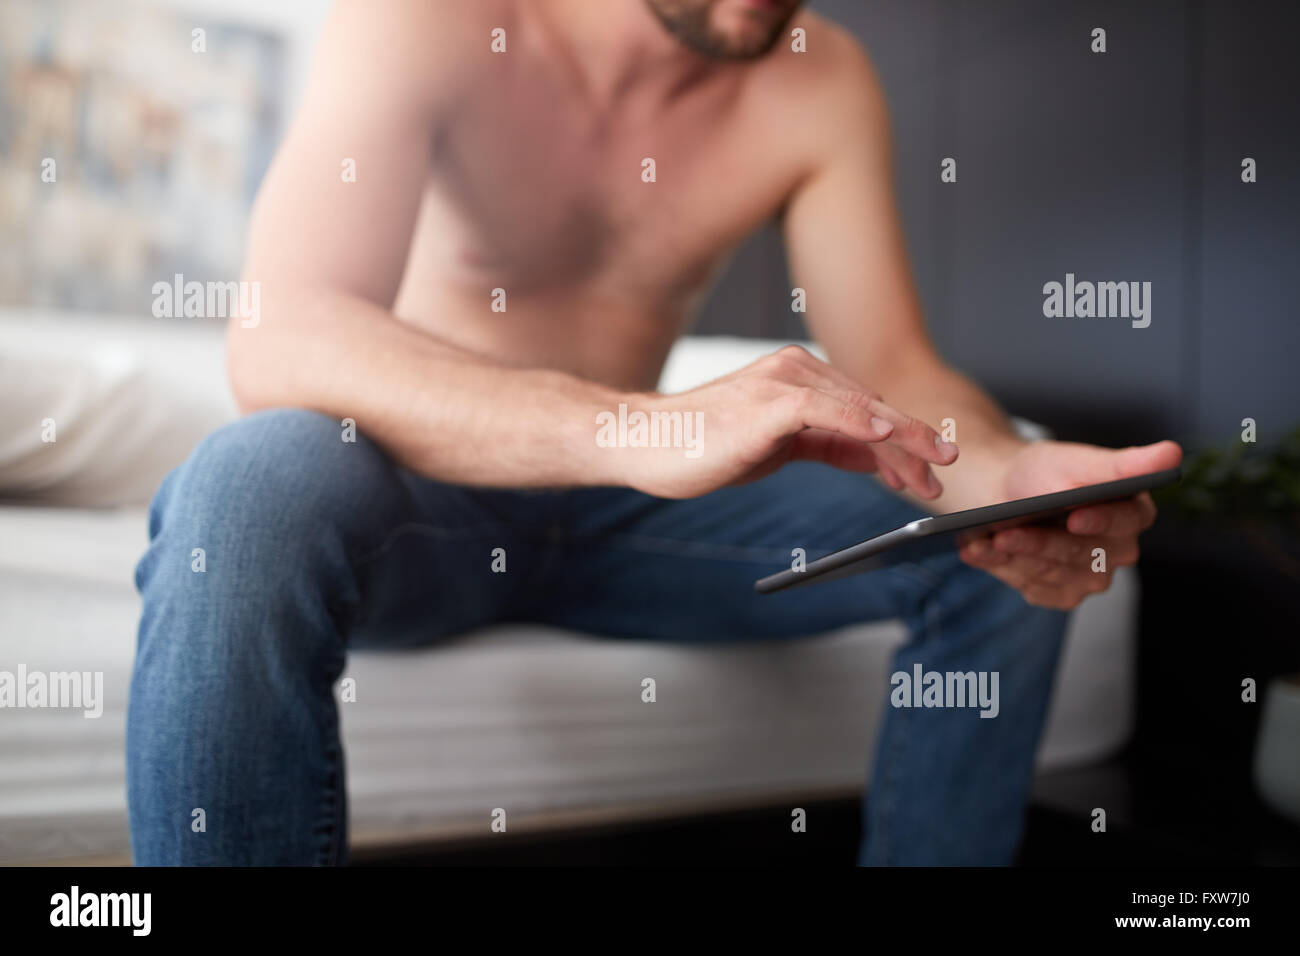 Close up portrait of young man sitting on the bed using digital tablet. Focus on hands and touch screen computer. - Stock Image